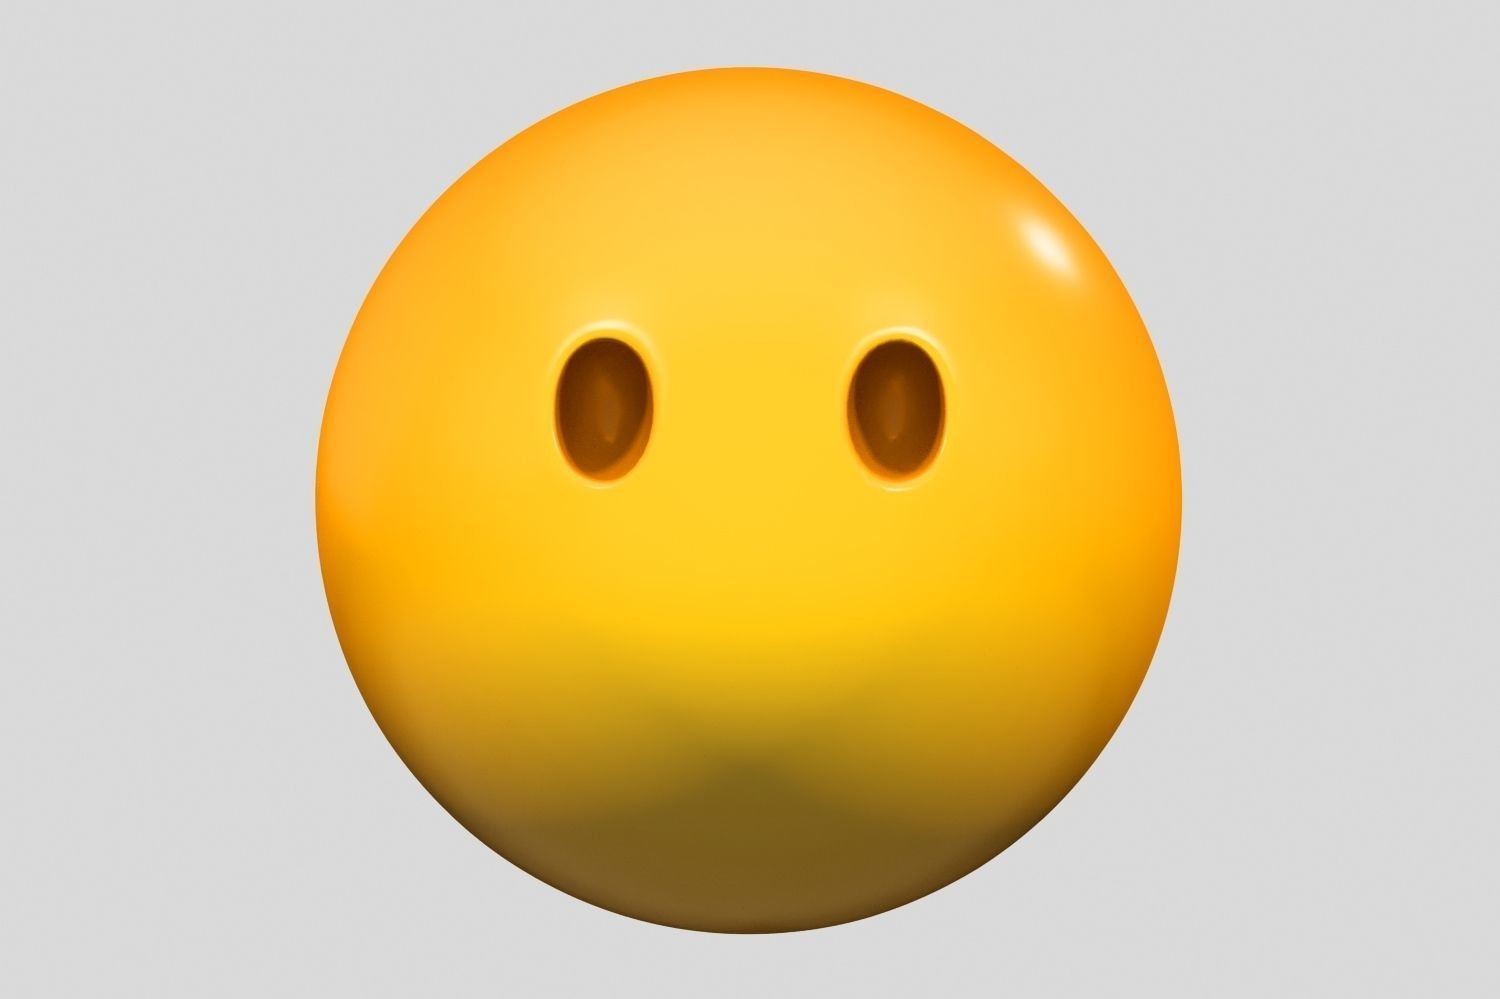 Emoji Face Without Mouth